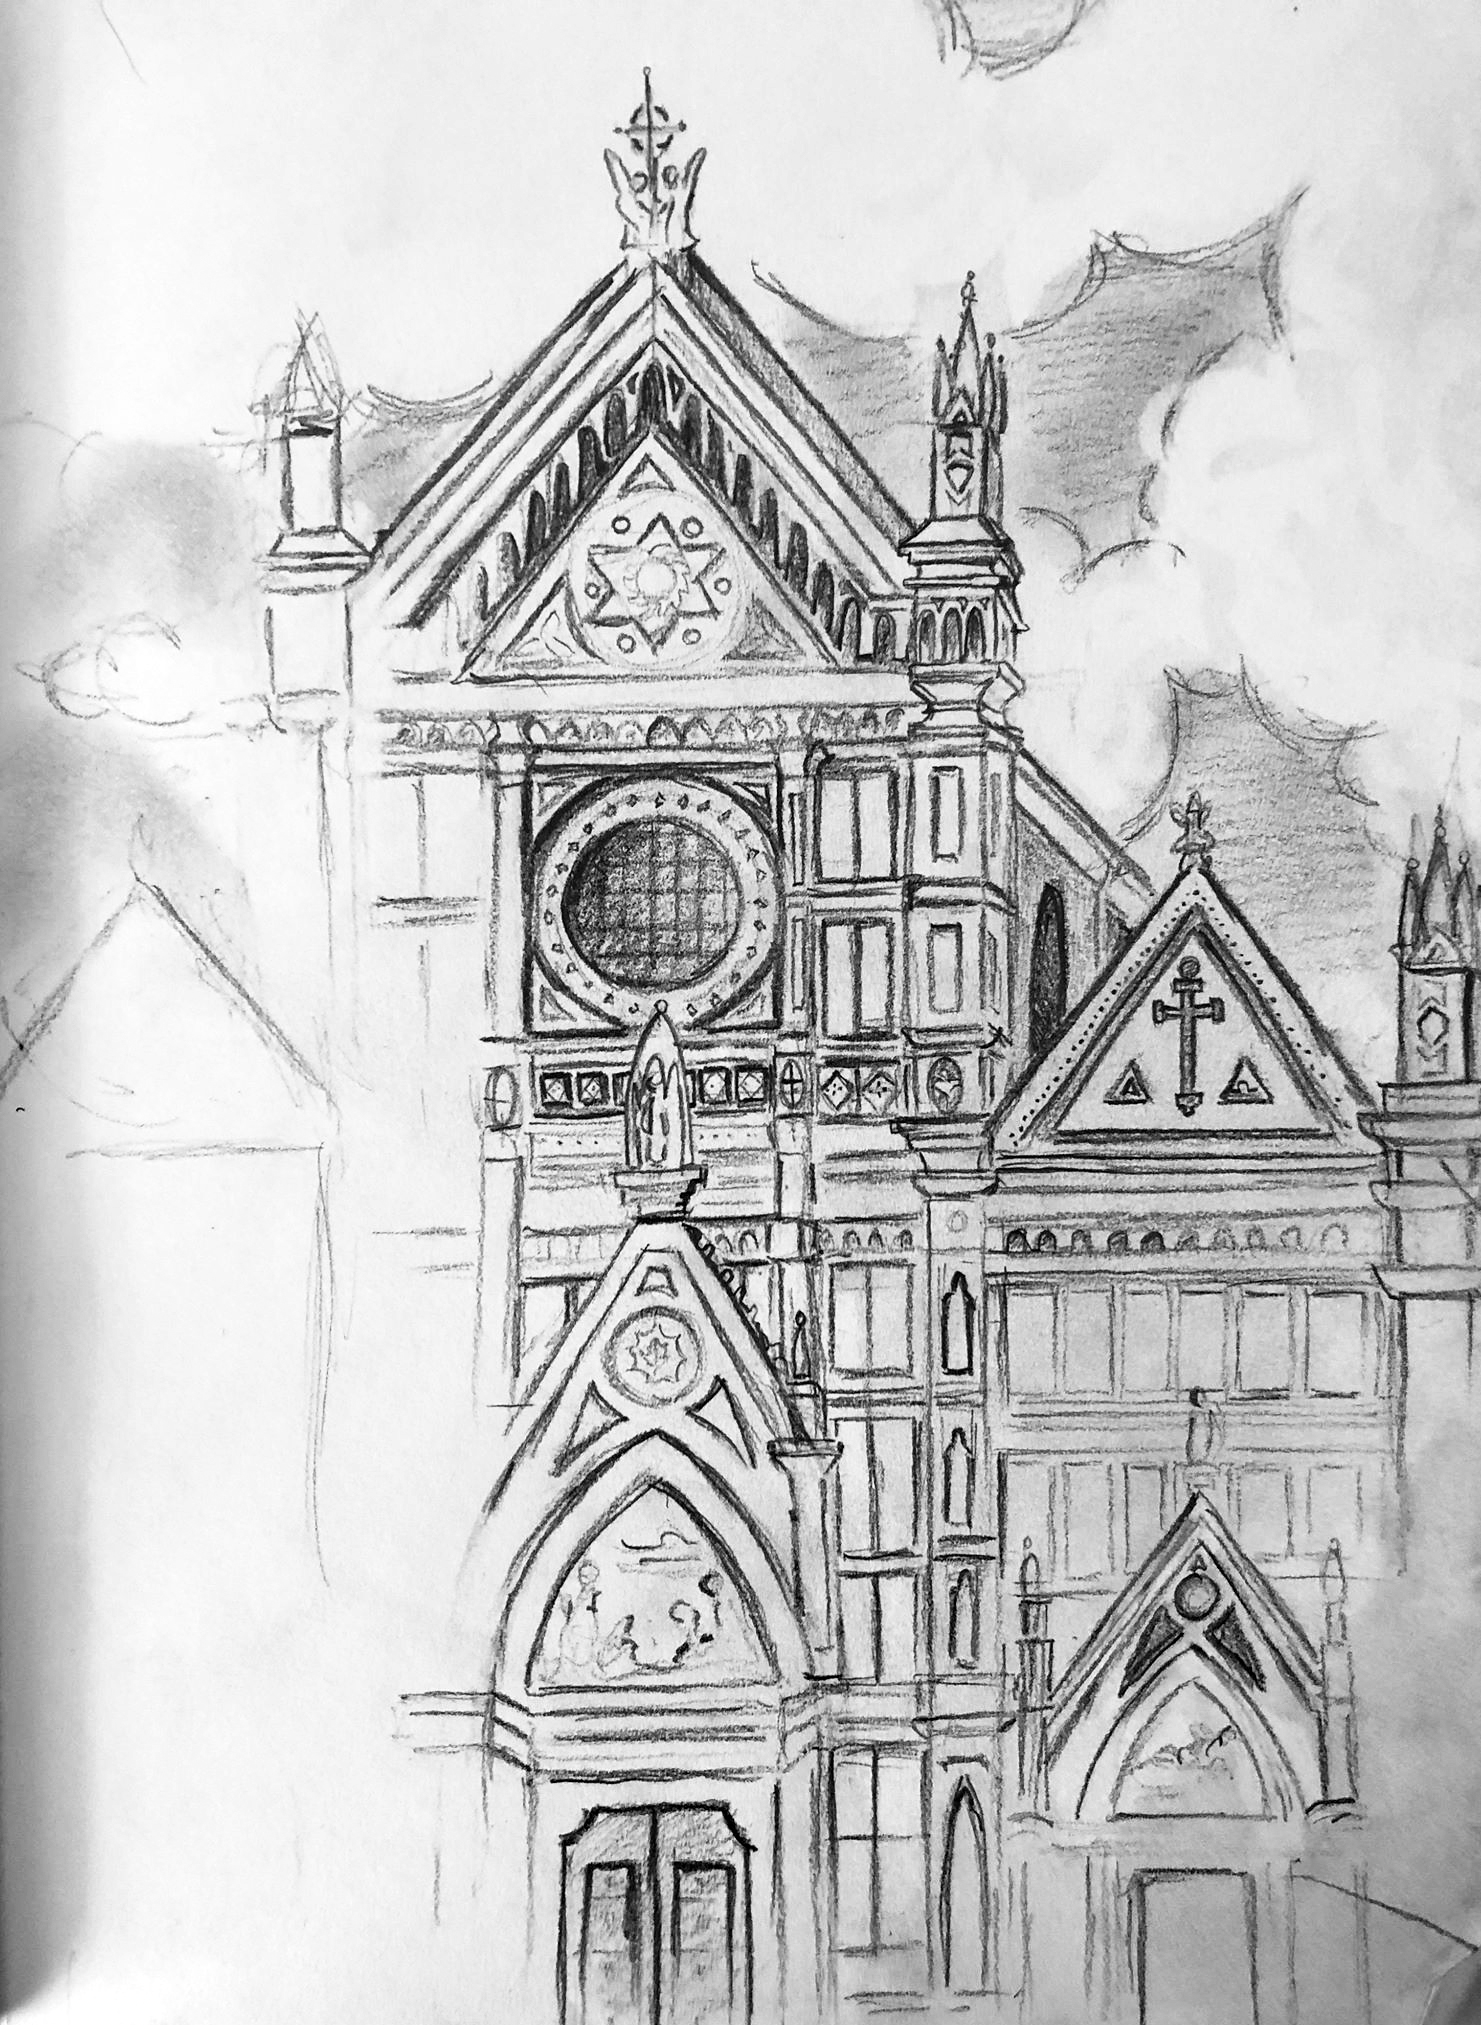 Unfinished Sketch Basilica of Santa Croce in Florence